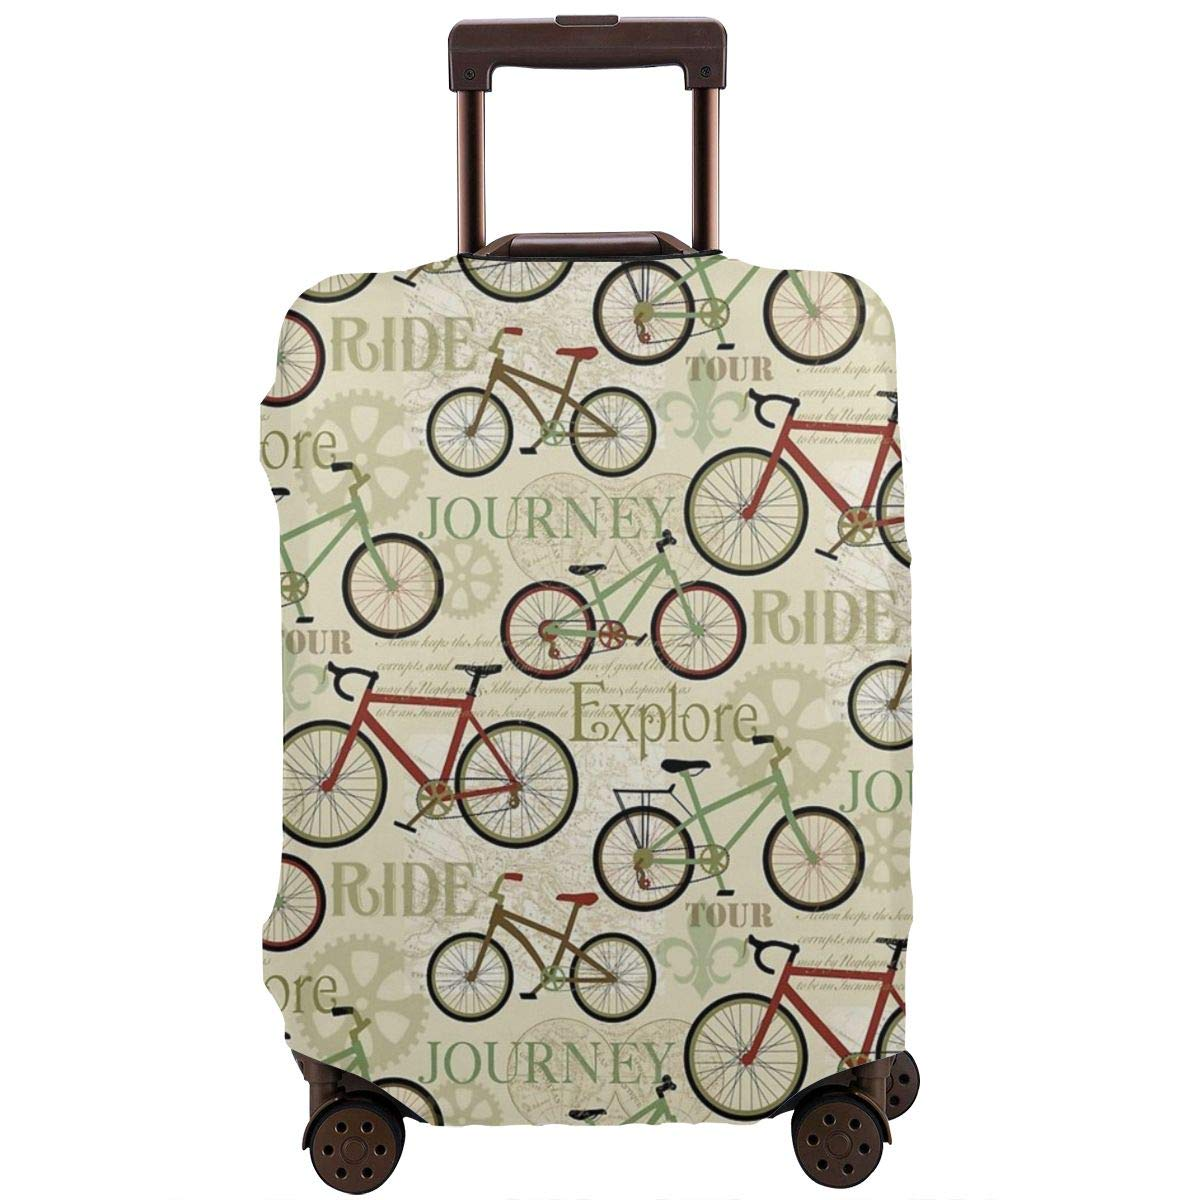 Luggage Cover Vintage Retro Bicycle Bike Journey Protective Travel Trunk Case Elastic Luggage Suitcase Protector Cover